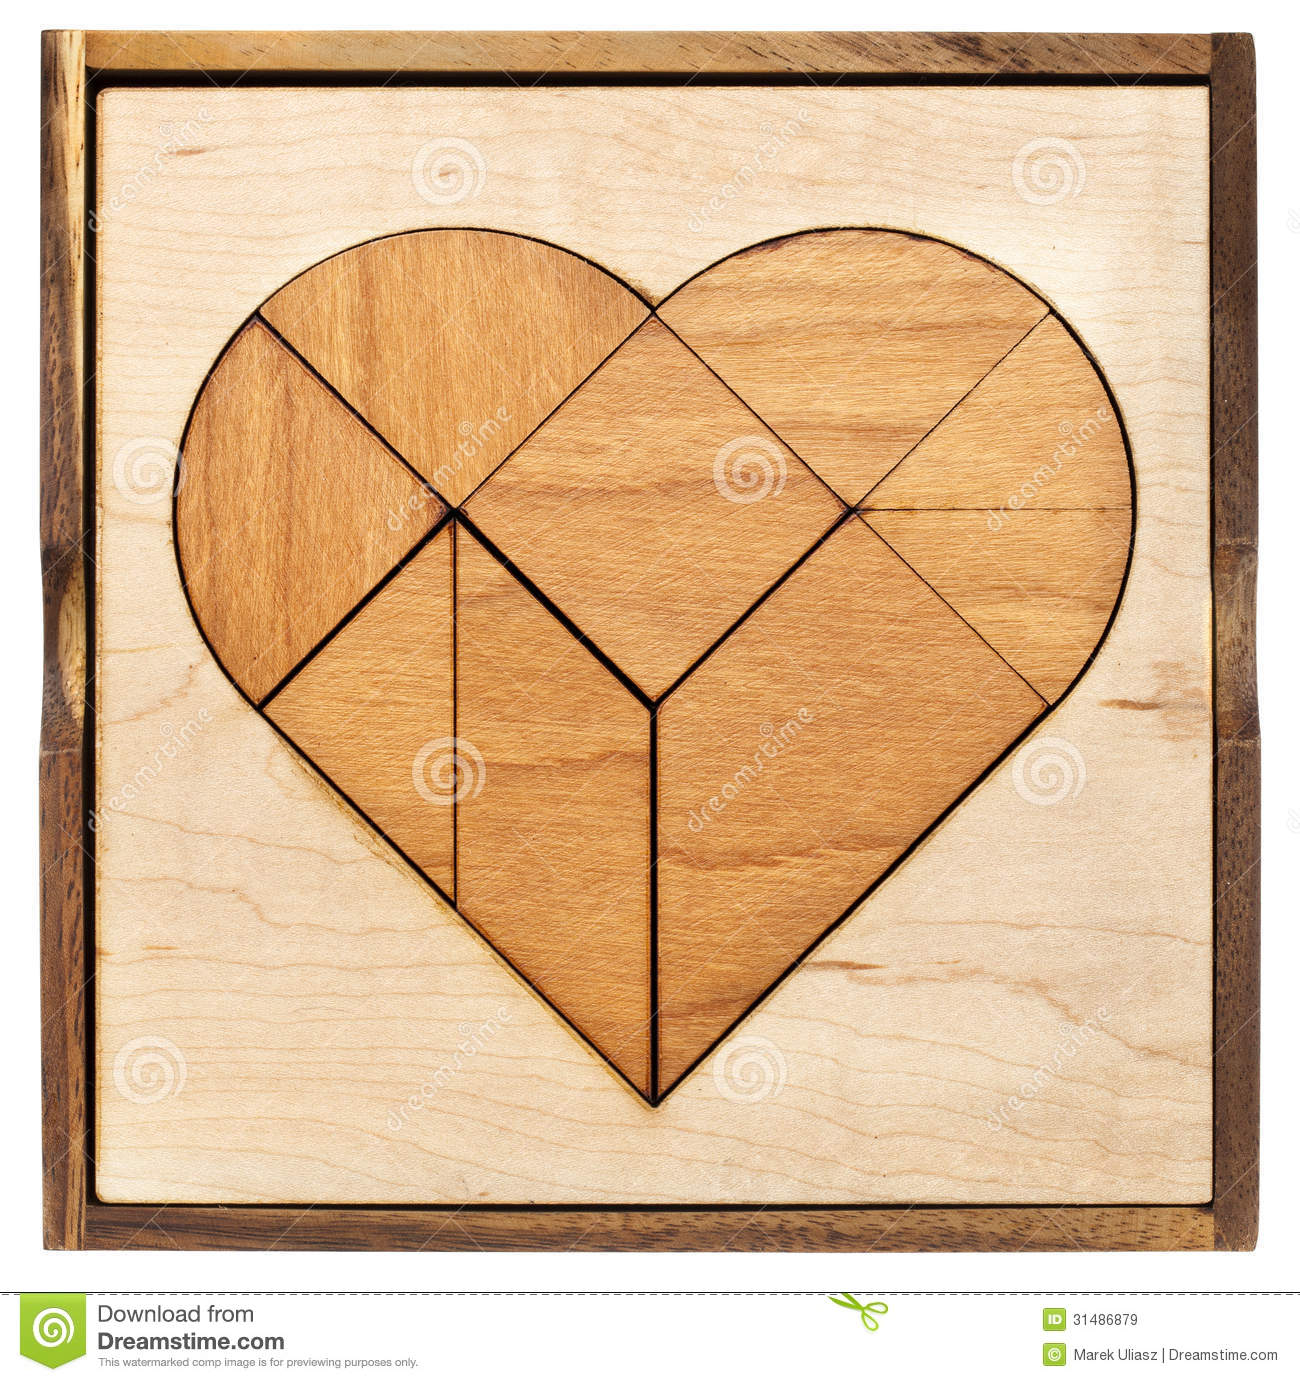 of tangram, a traditional Chinese Puzzle Game made of different wood ...